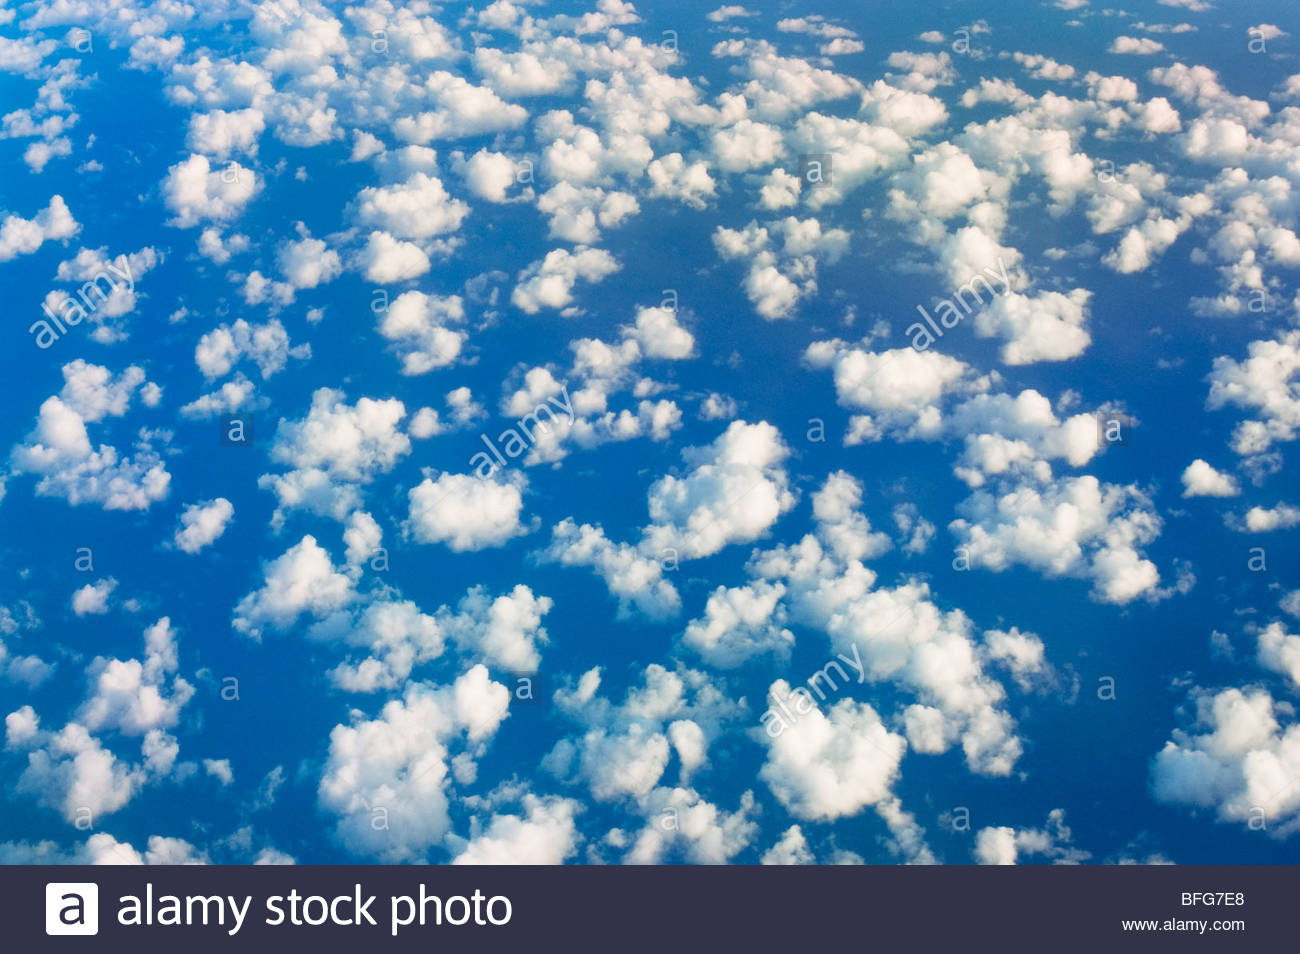 Clouds over ocean, South Pacific Ocean - Stock Image